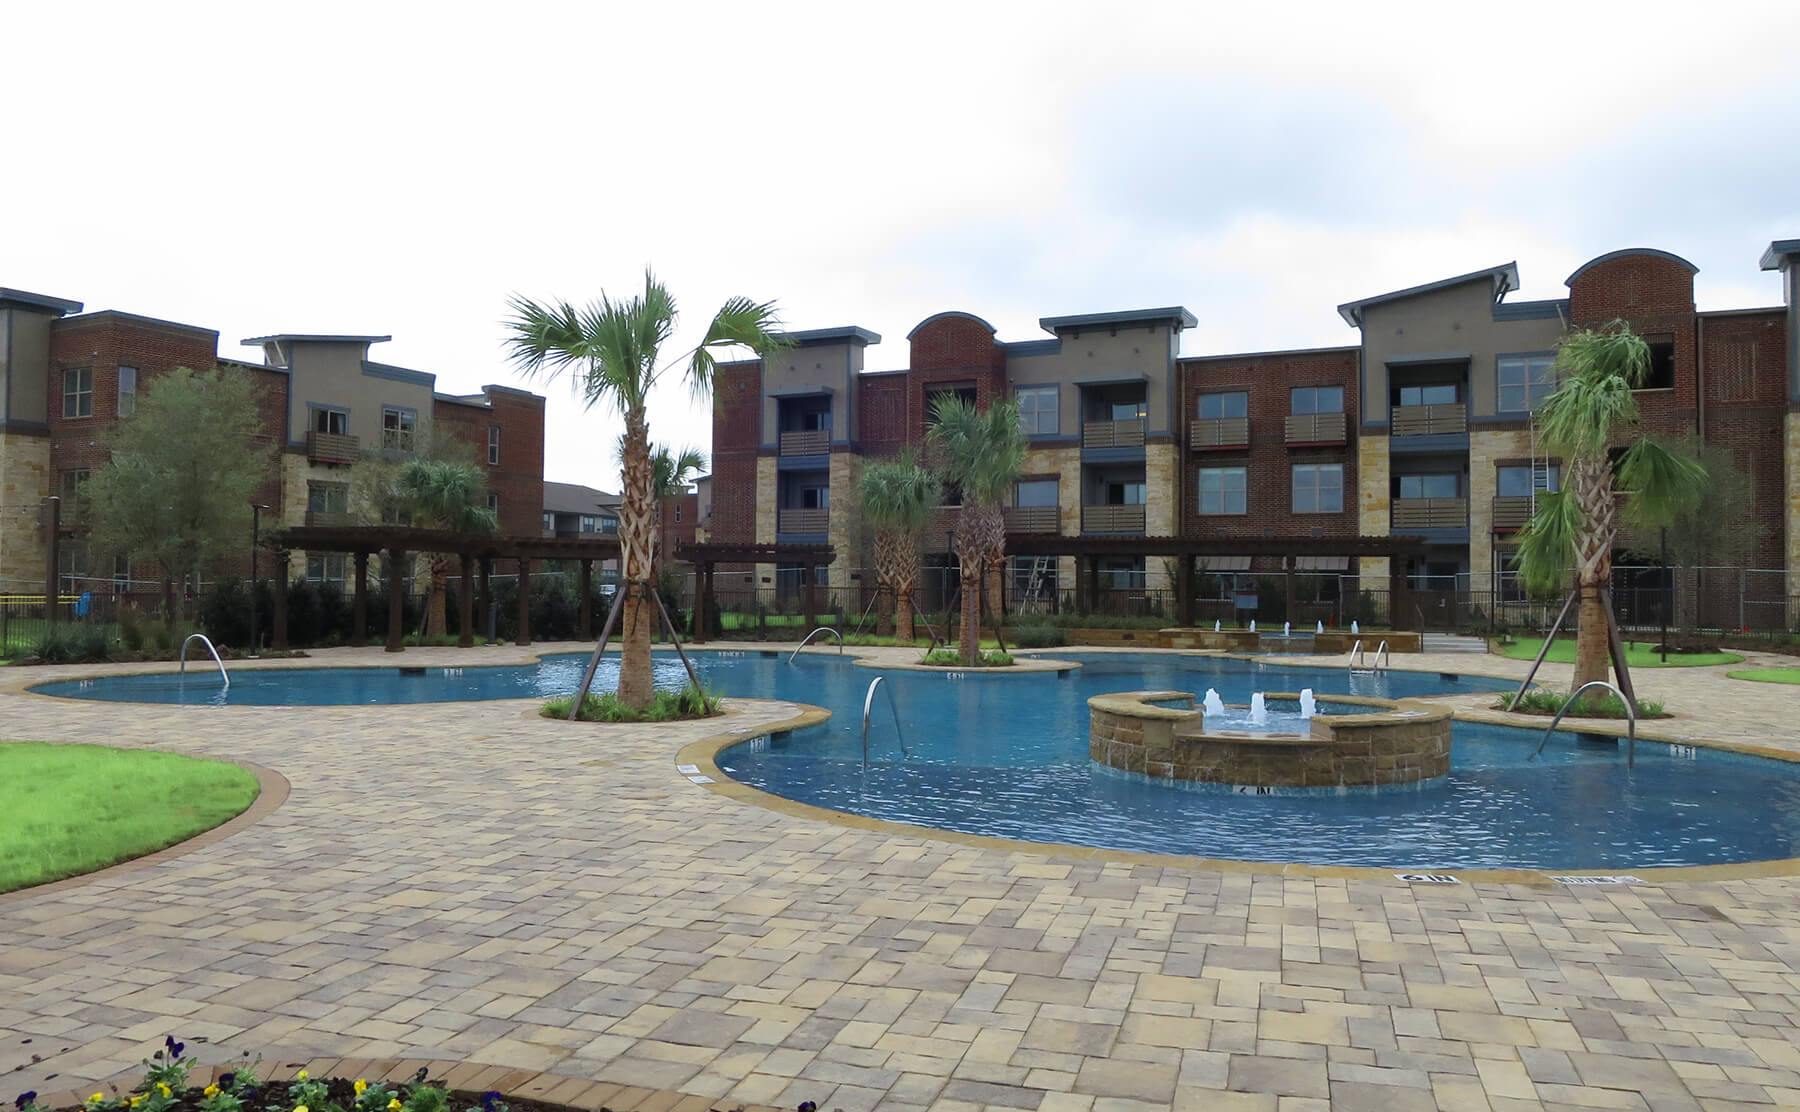 Apartments in McKinney with the Best Pools